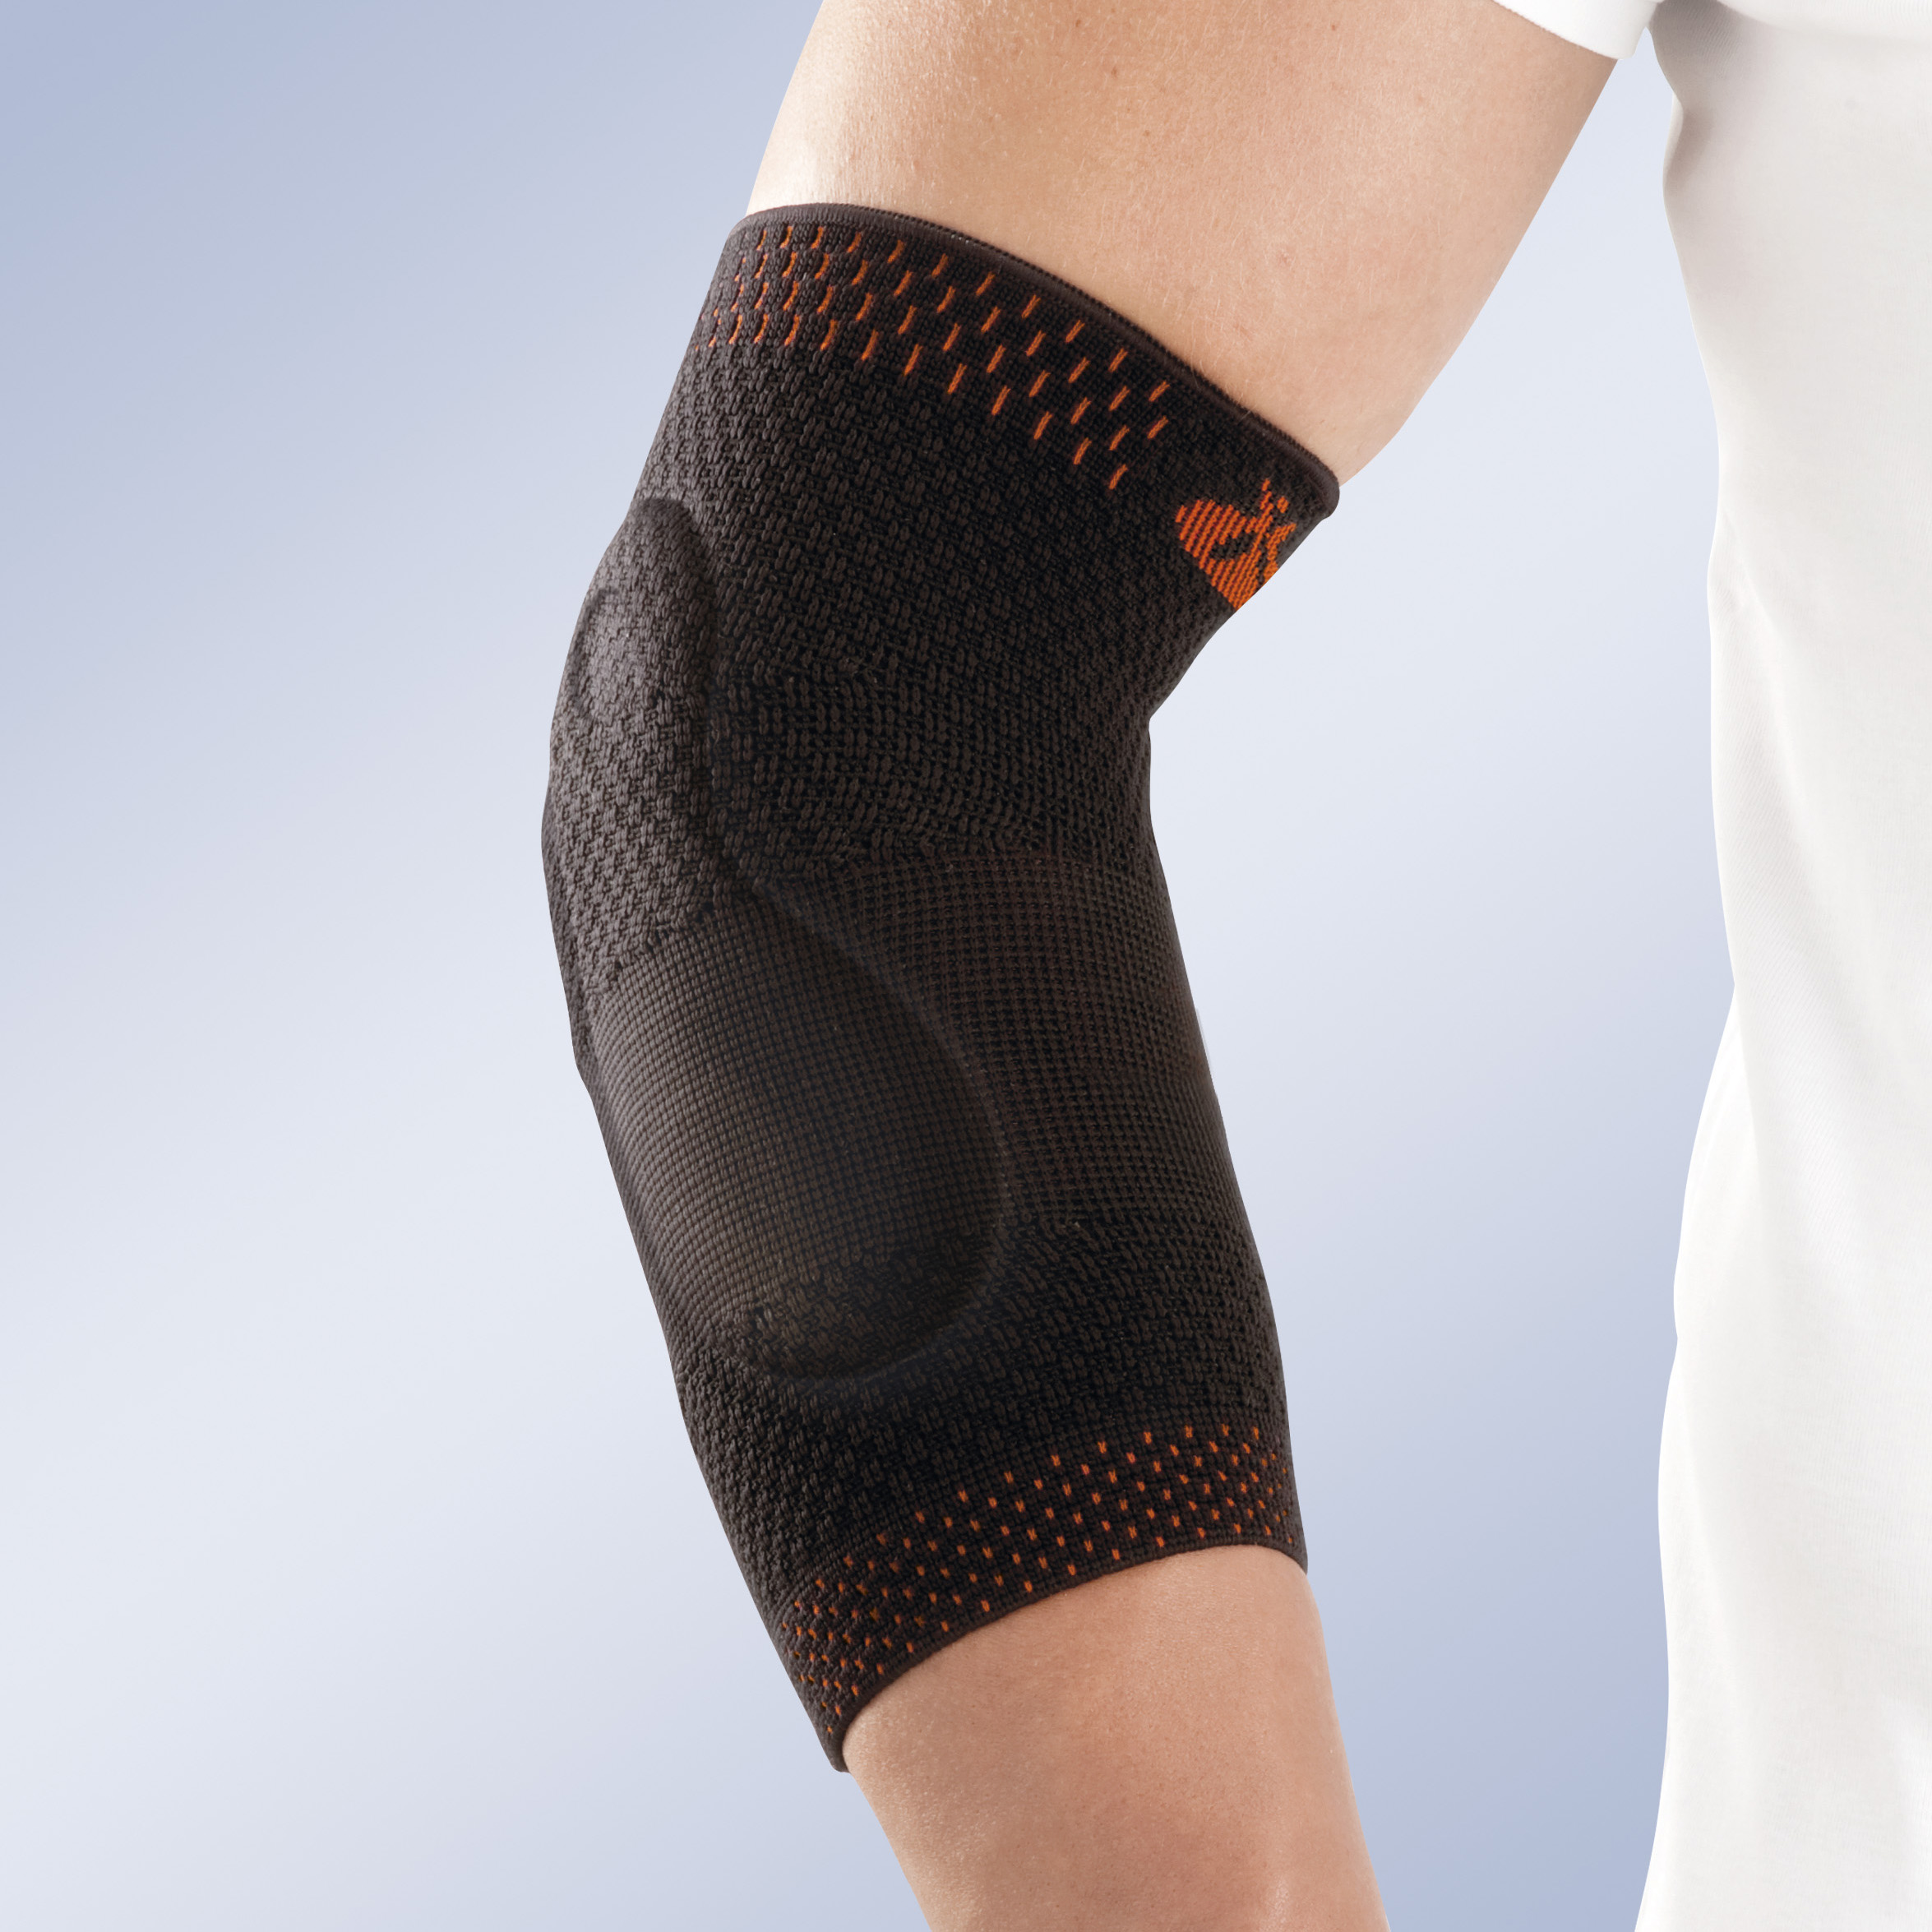 ELASTIC ELBOW SUPPORT WITH VISCOLASTIC PADS